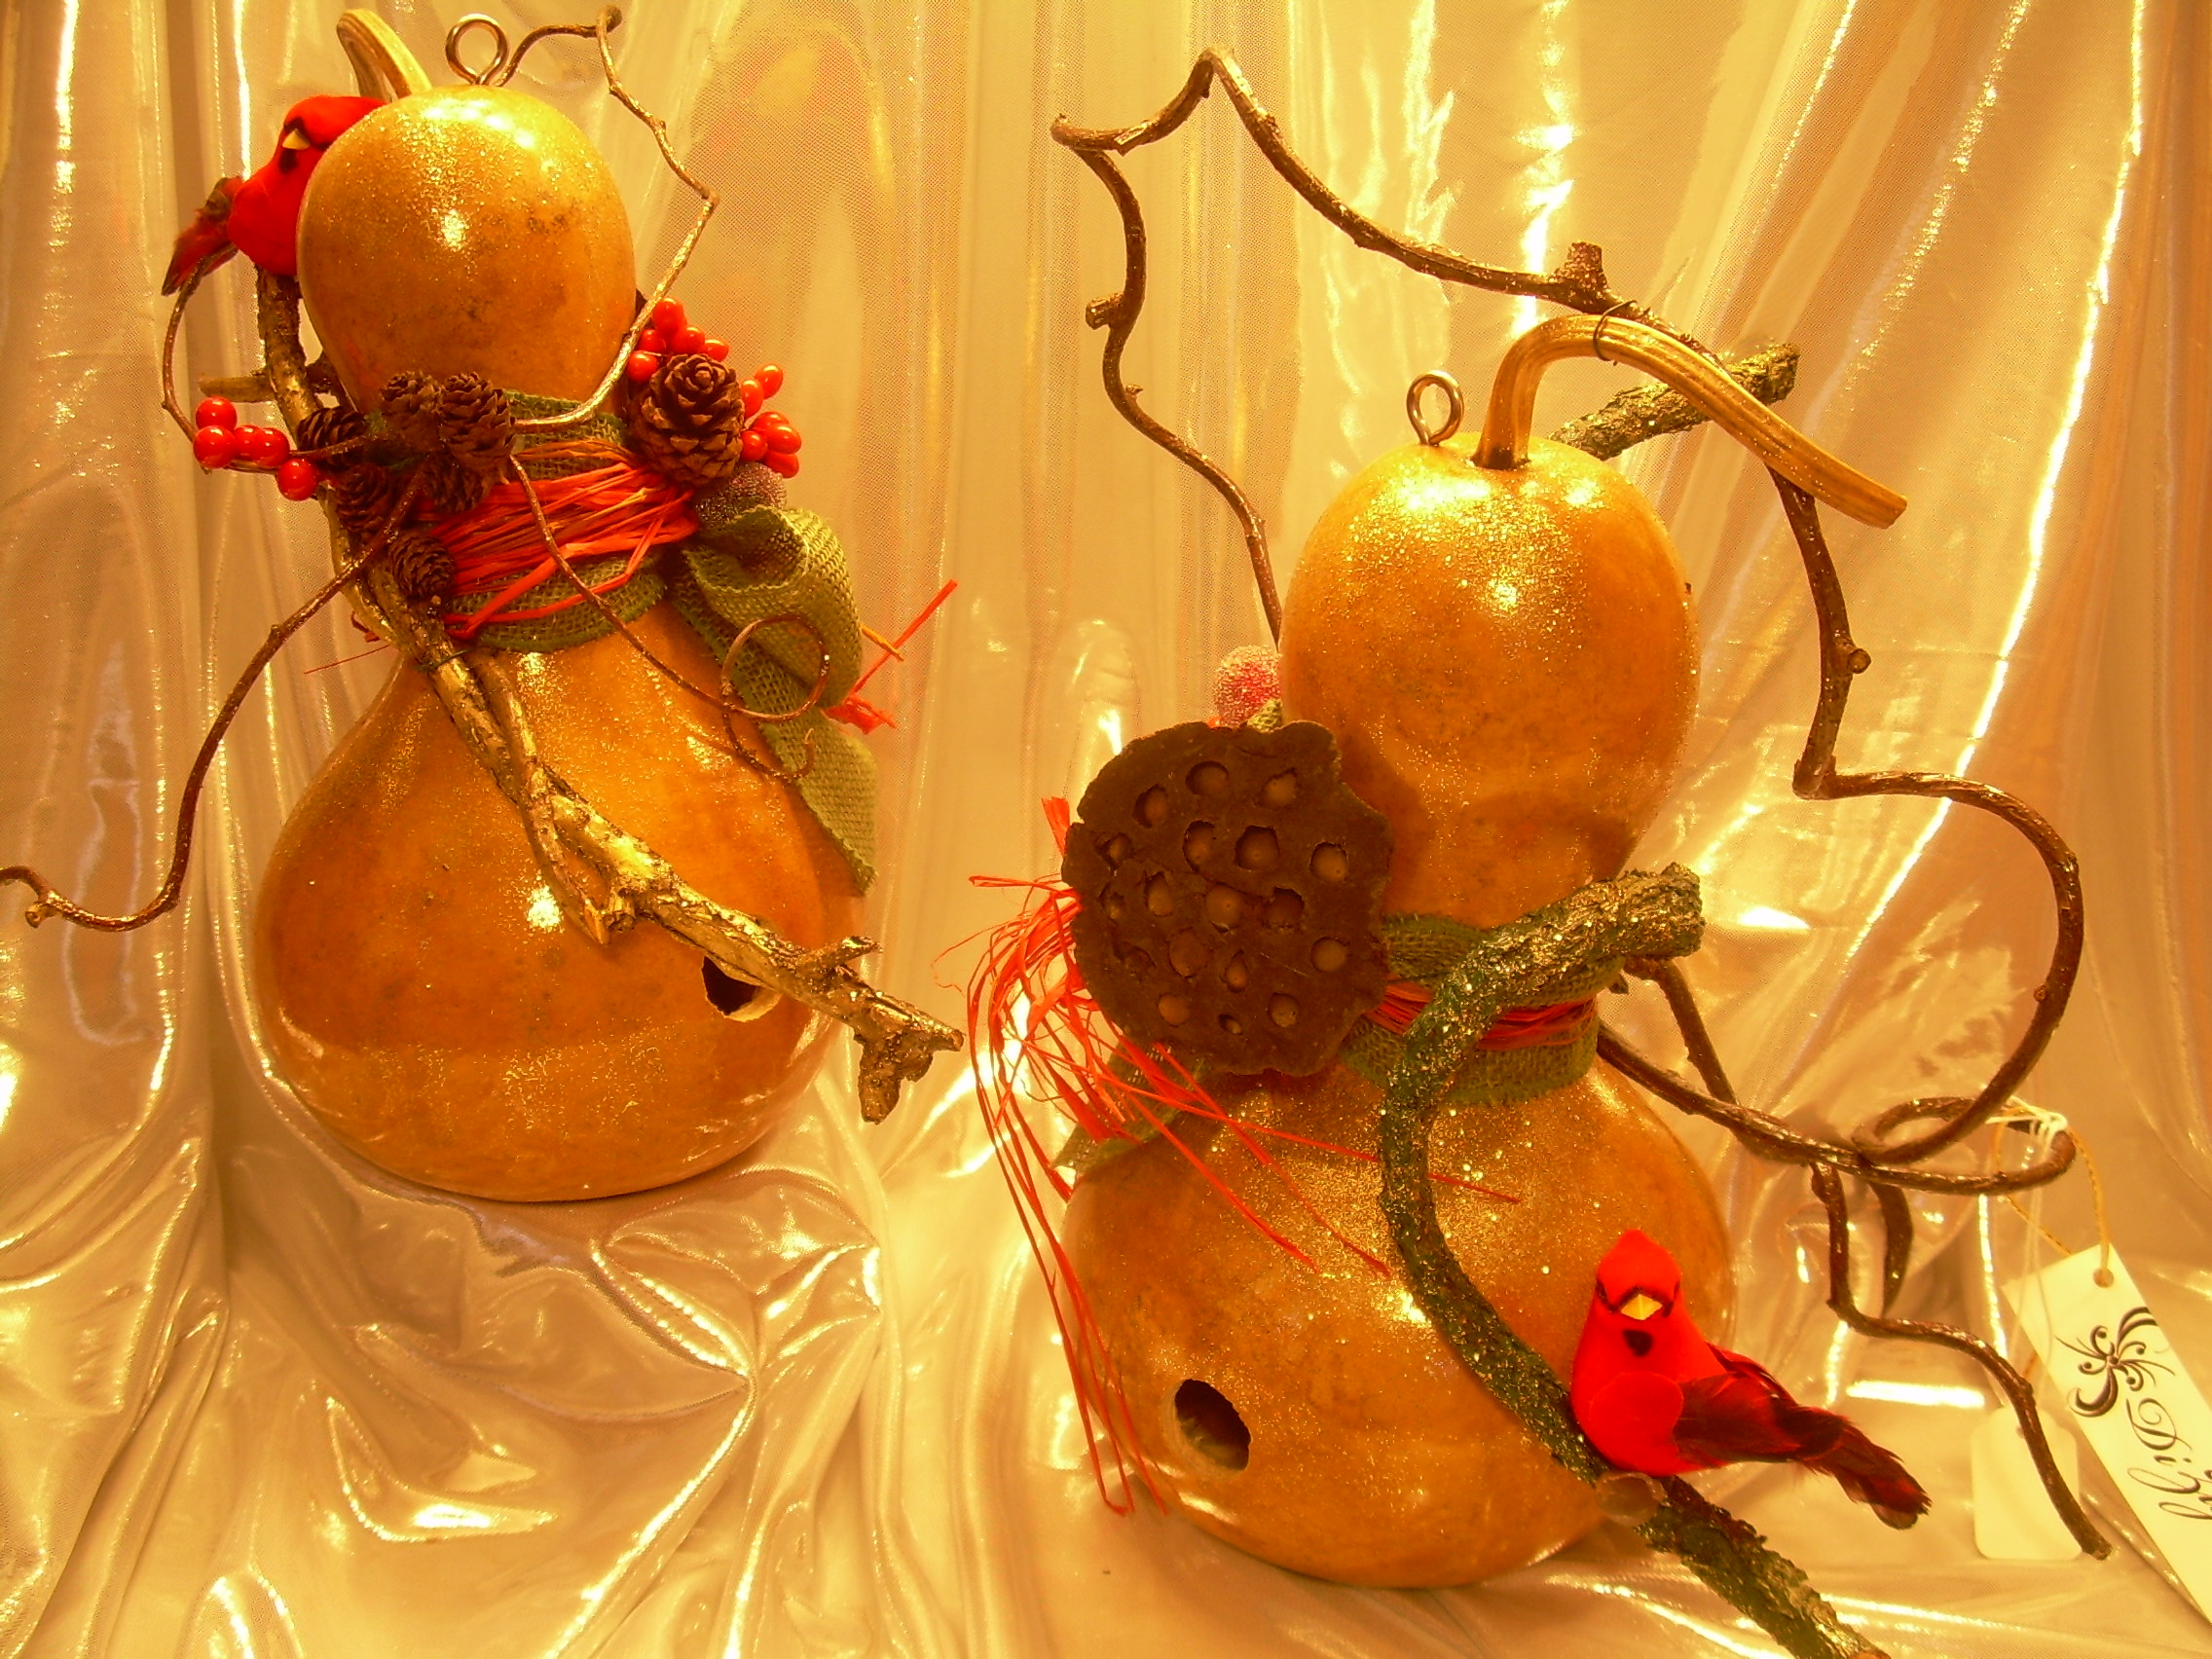 Larger gourds with holes to be used as birdhouses and decorated for the holidays